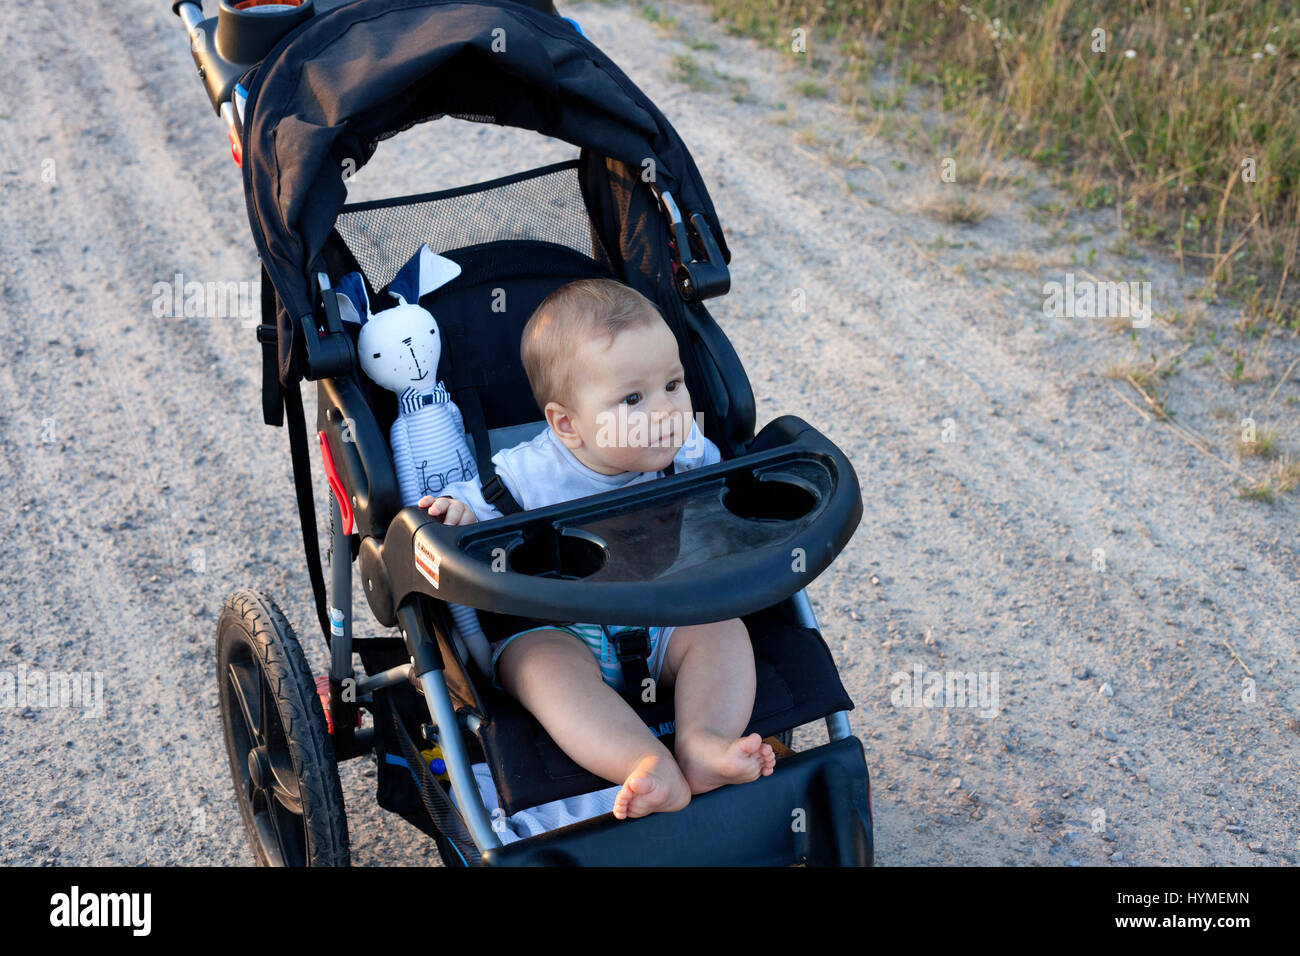 Alert barefooted infant baby taking a ride in his stroller. Polish Baby 7 months old. Zawady Central Poland Europe - Stock Image